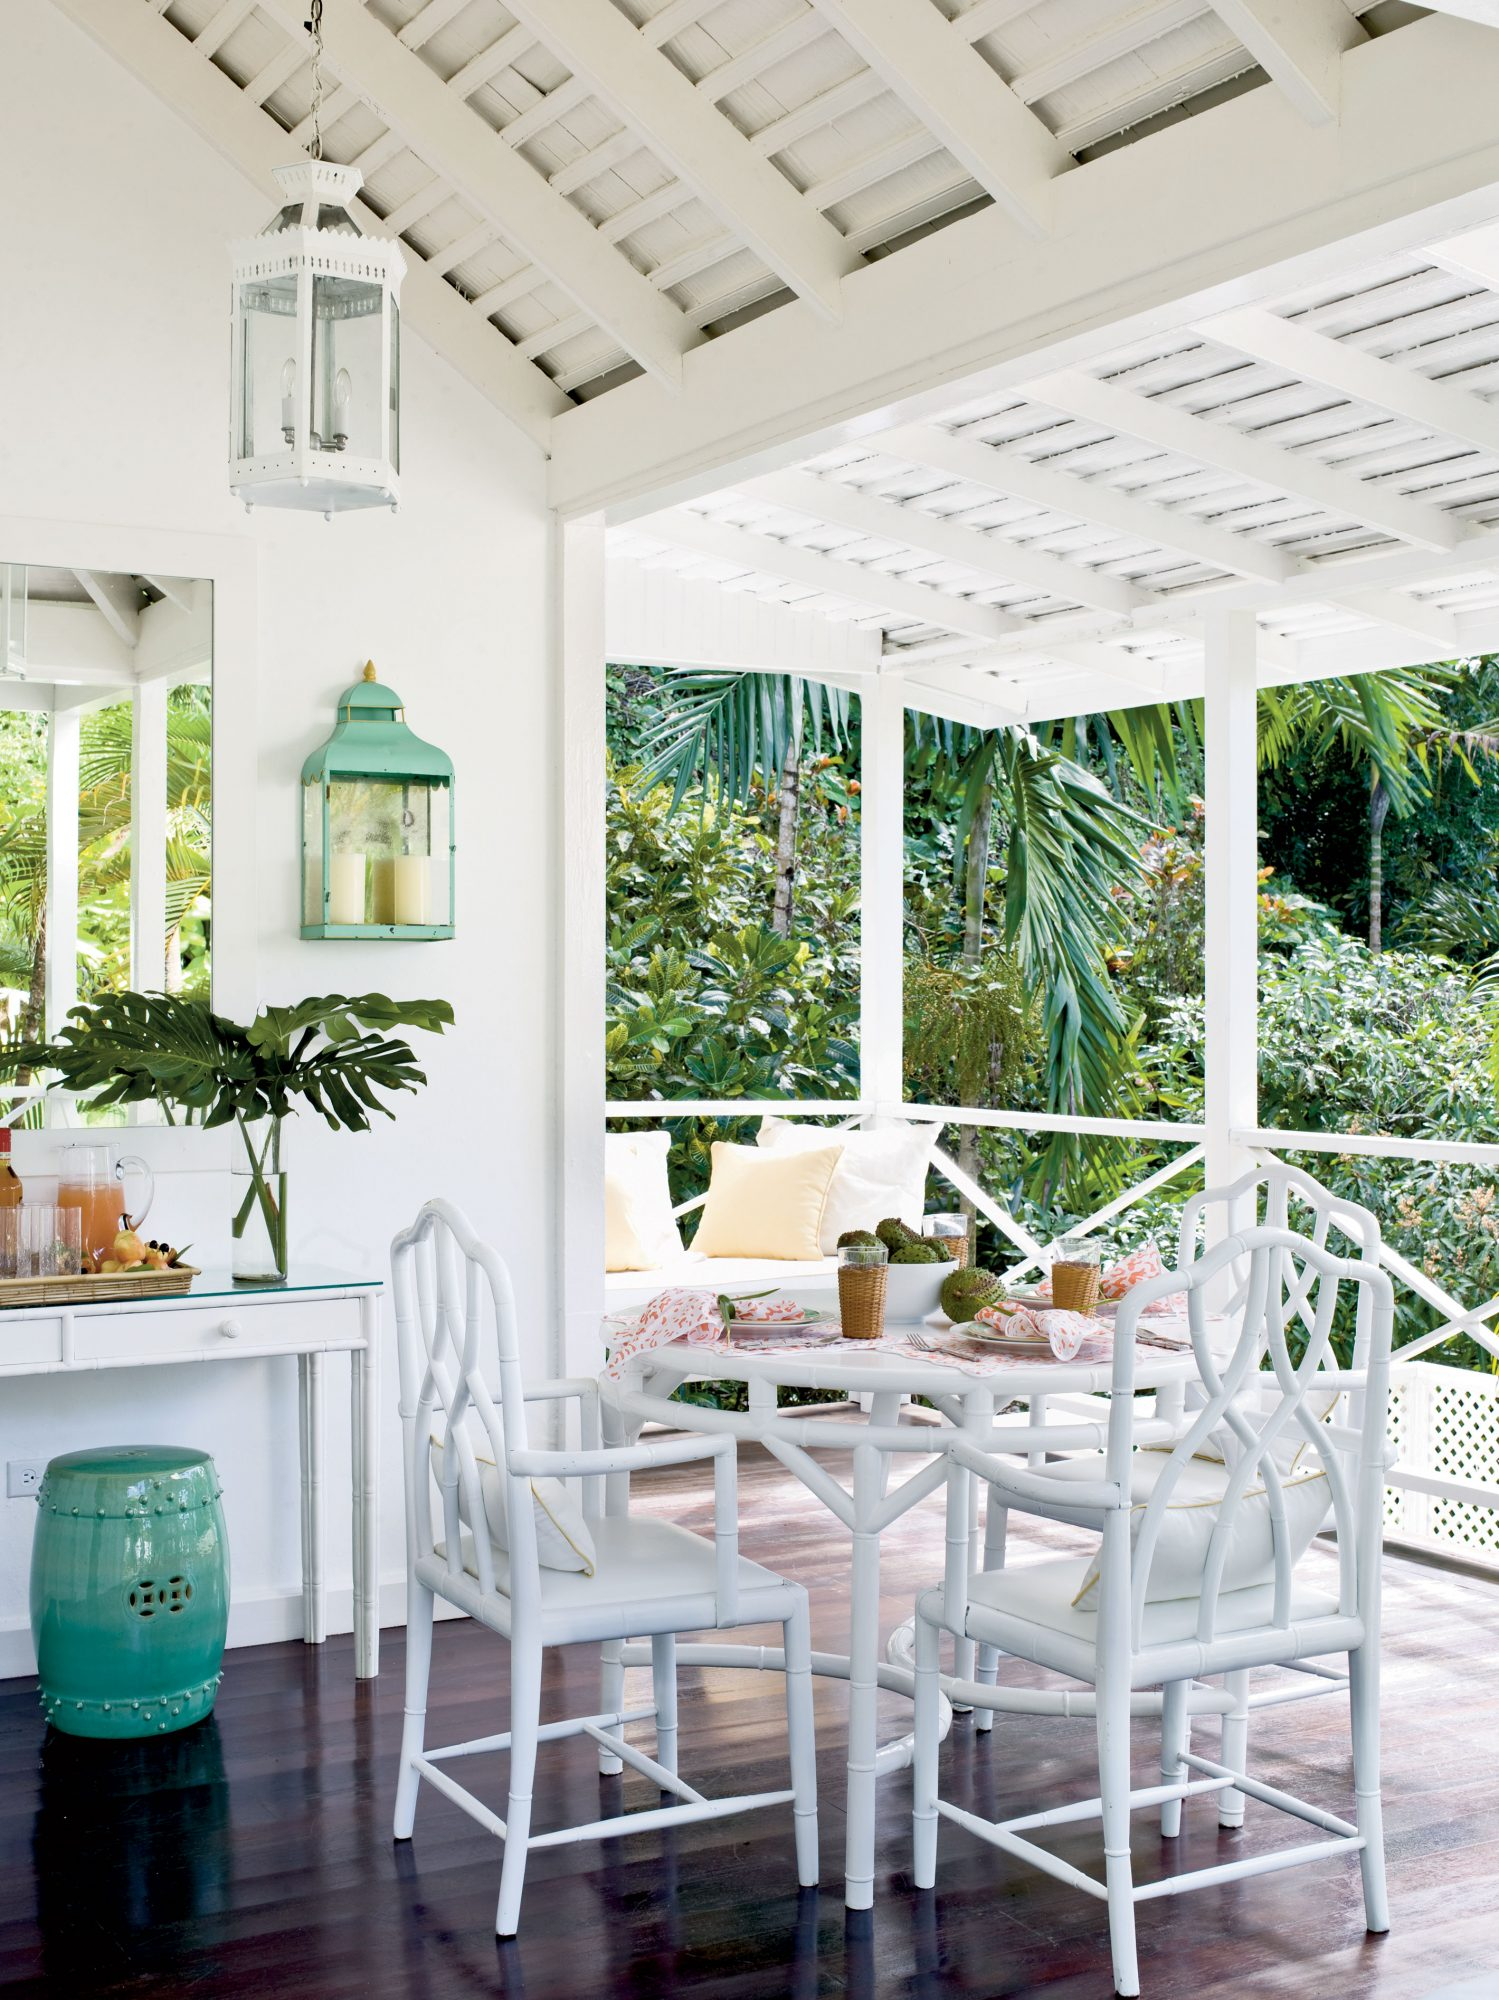 Outdoor lanterns, bamboo furniture, and a ceramic stool will stand up to the elements without sacrificing style.